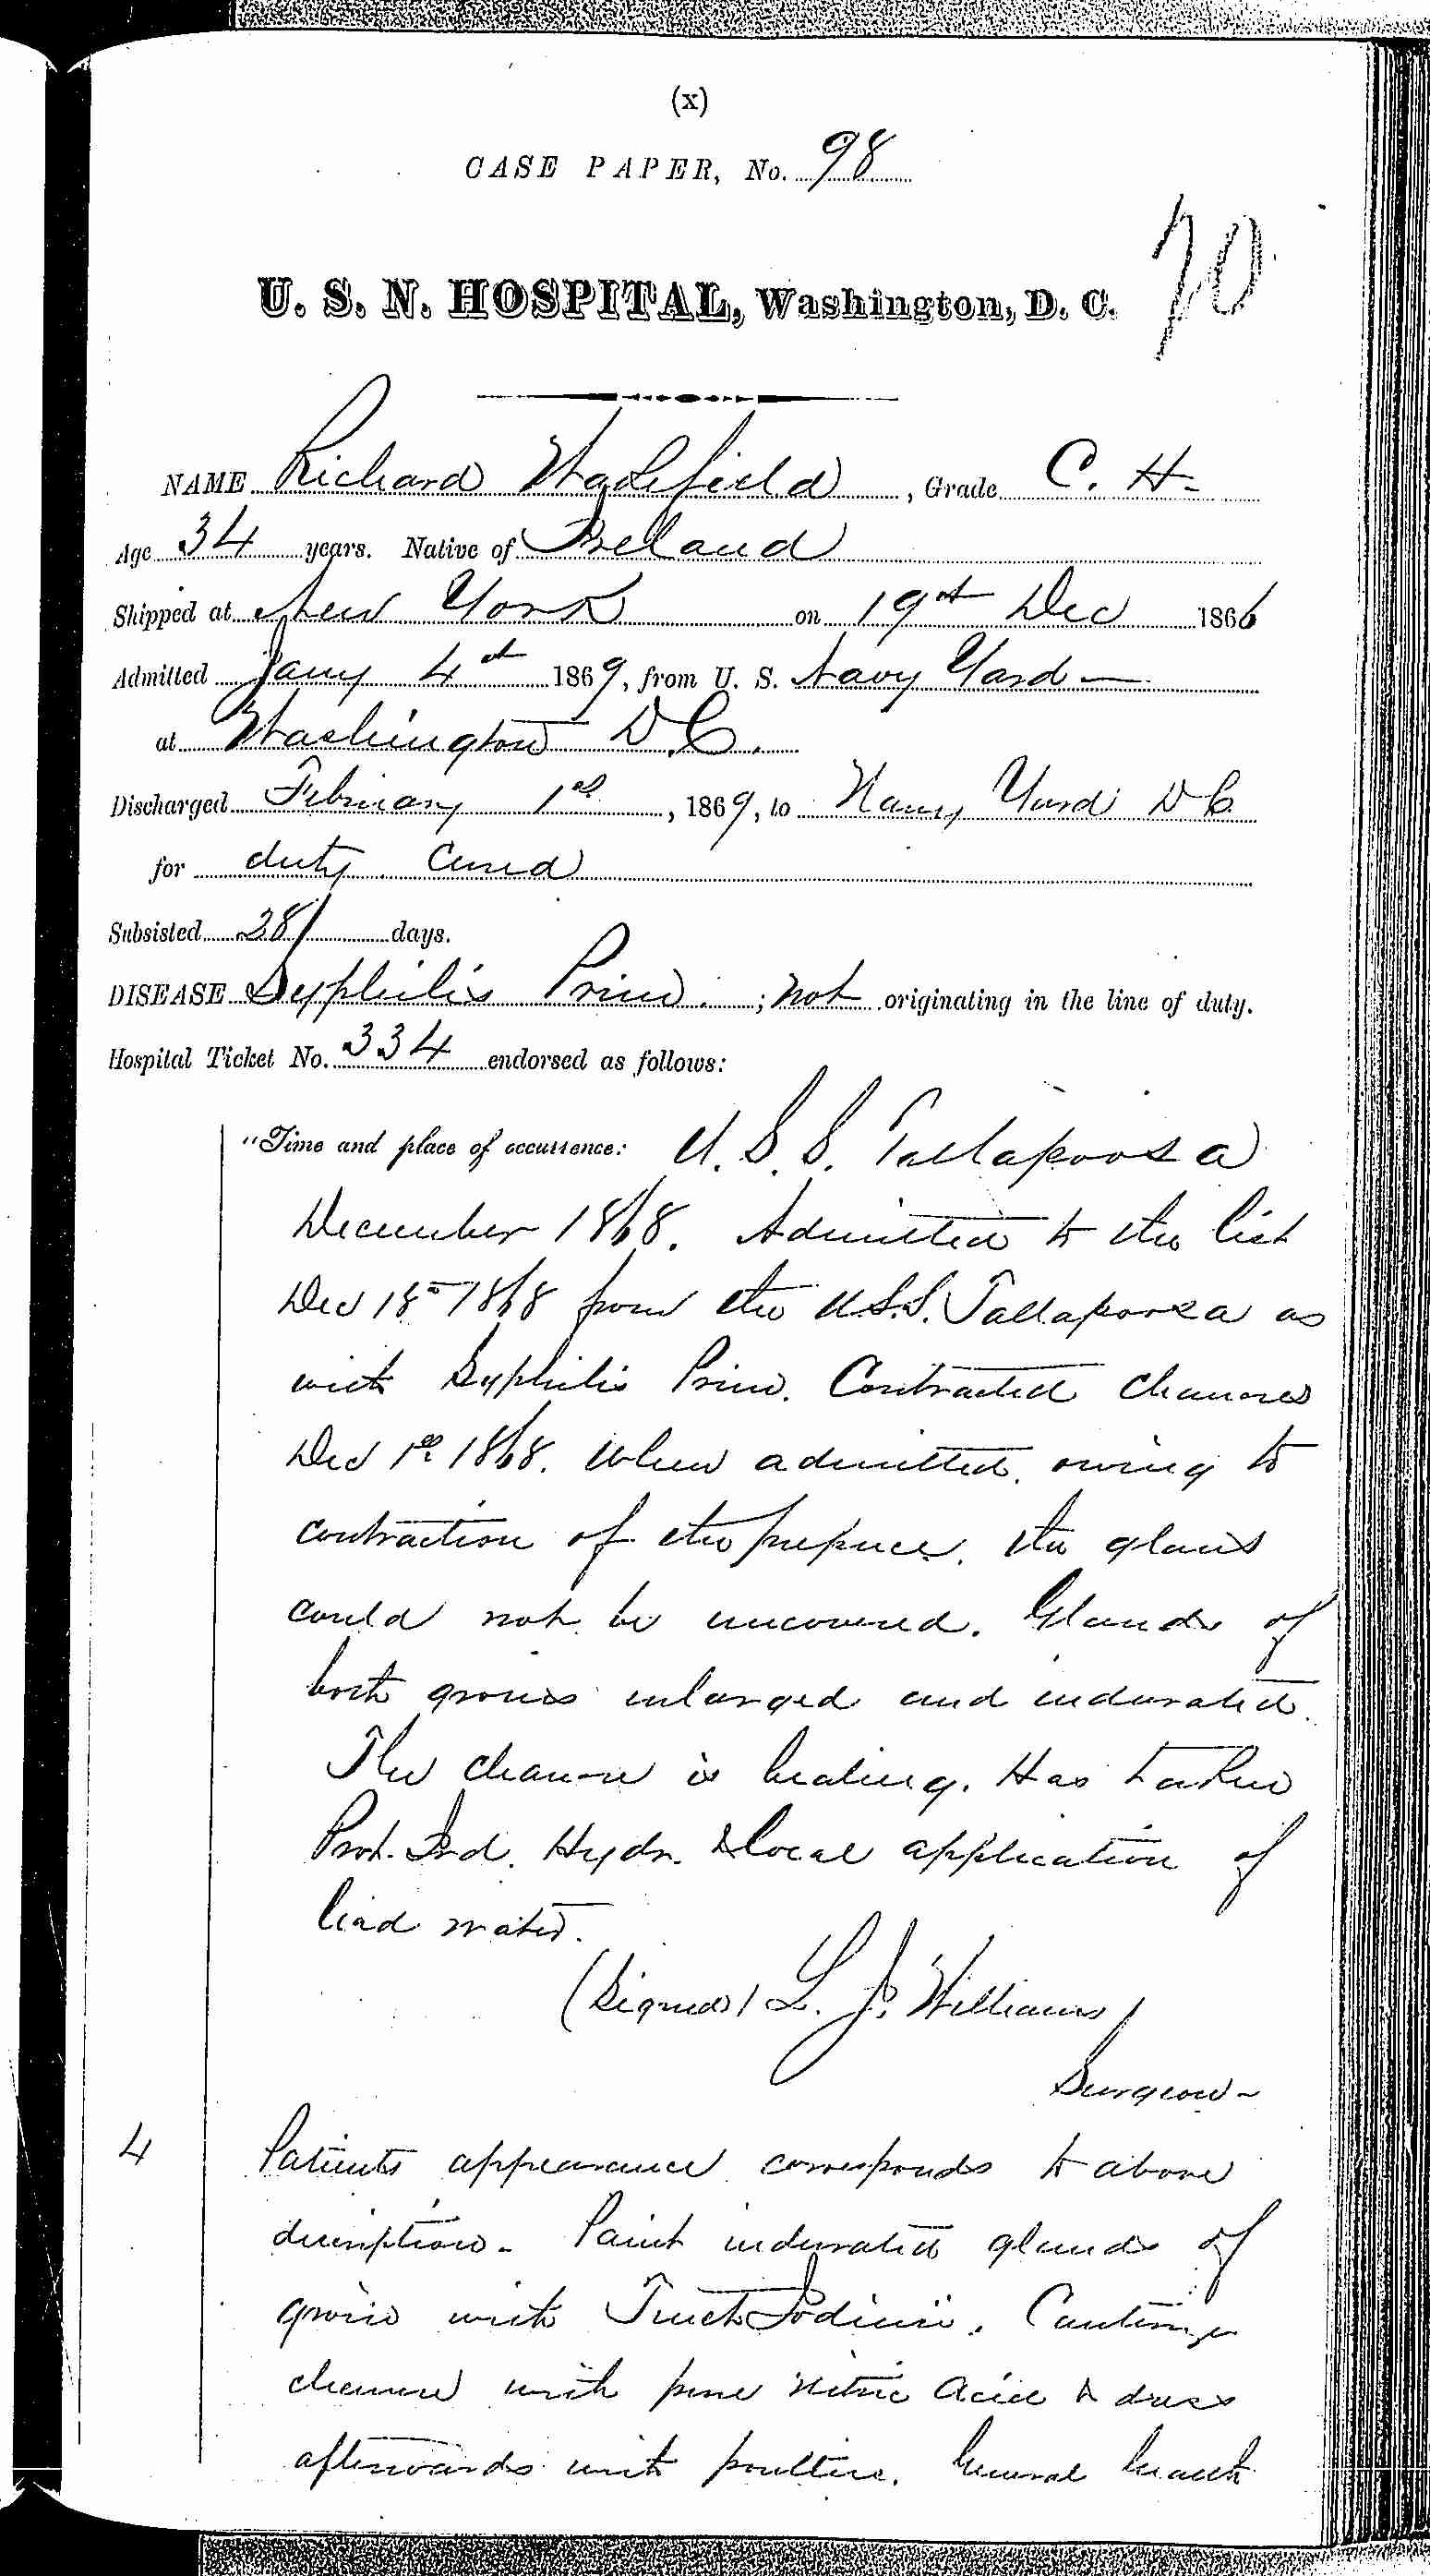 Entry for Richard Wakefield (page 1 of 3) in the log Hospital Tickets and Case Papers - Naval Hospital - Washington, D.C. - 1868-69